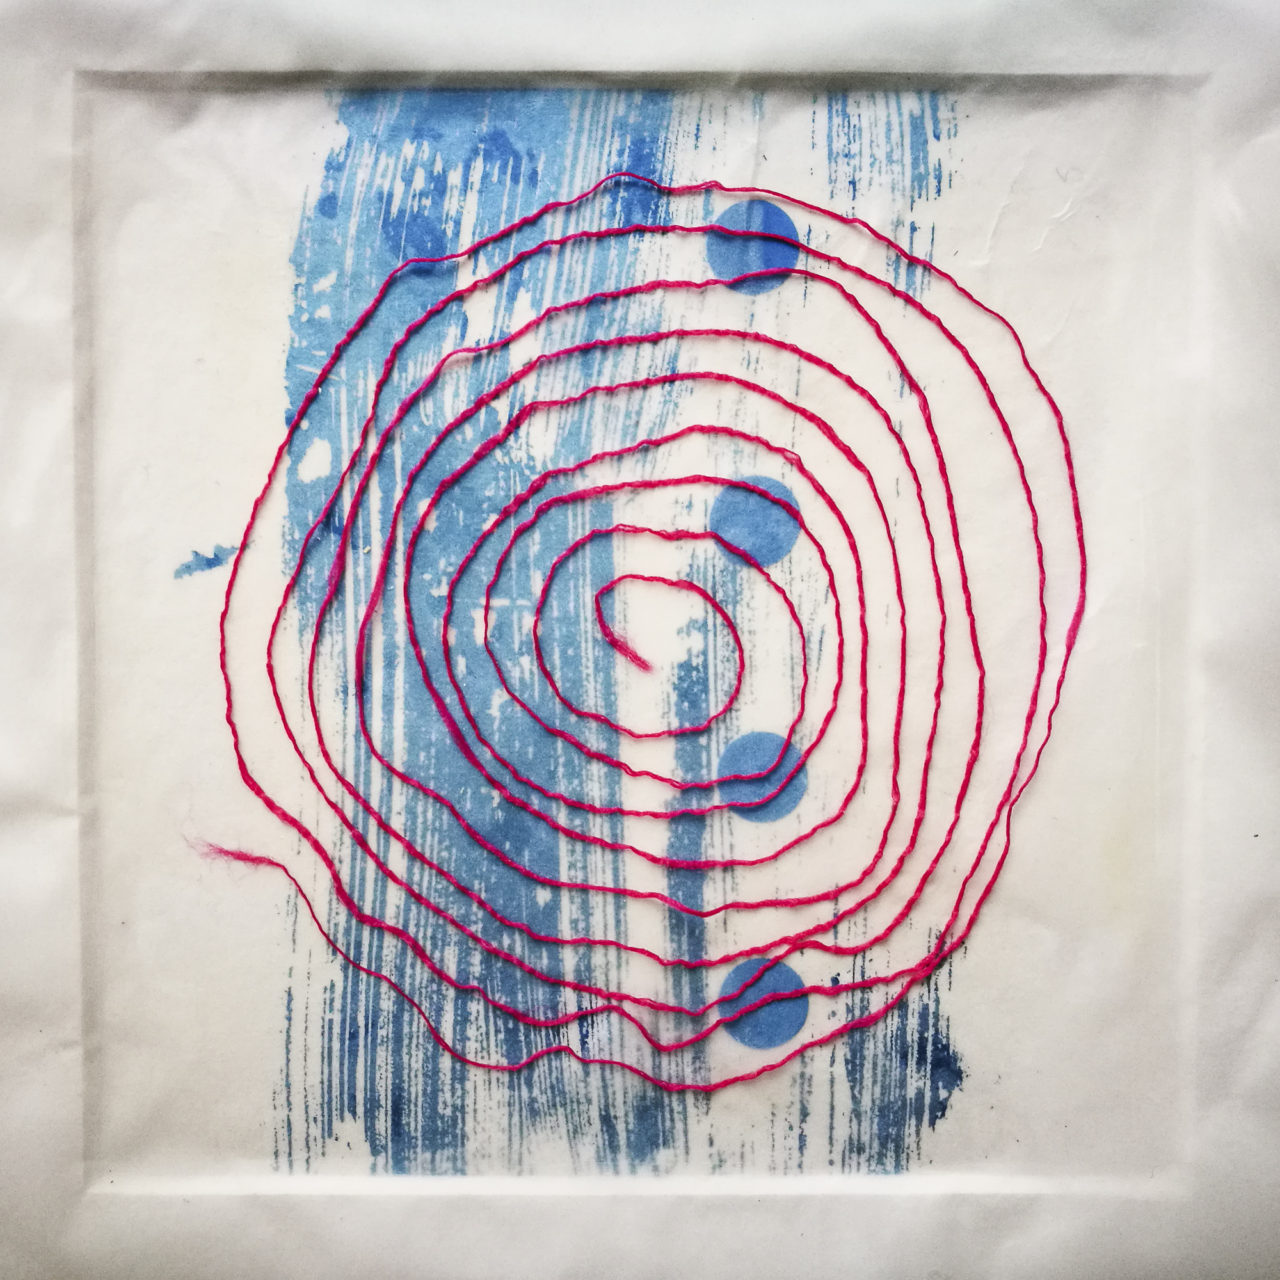 Blue dot Spiral artwork by Michelle Rumney from the St Thomas Way Swansea to Hereford 2018Blue dot Spiral artwork by Michelle Rumney from the St Thomas Way Swansea to Hereford 2018